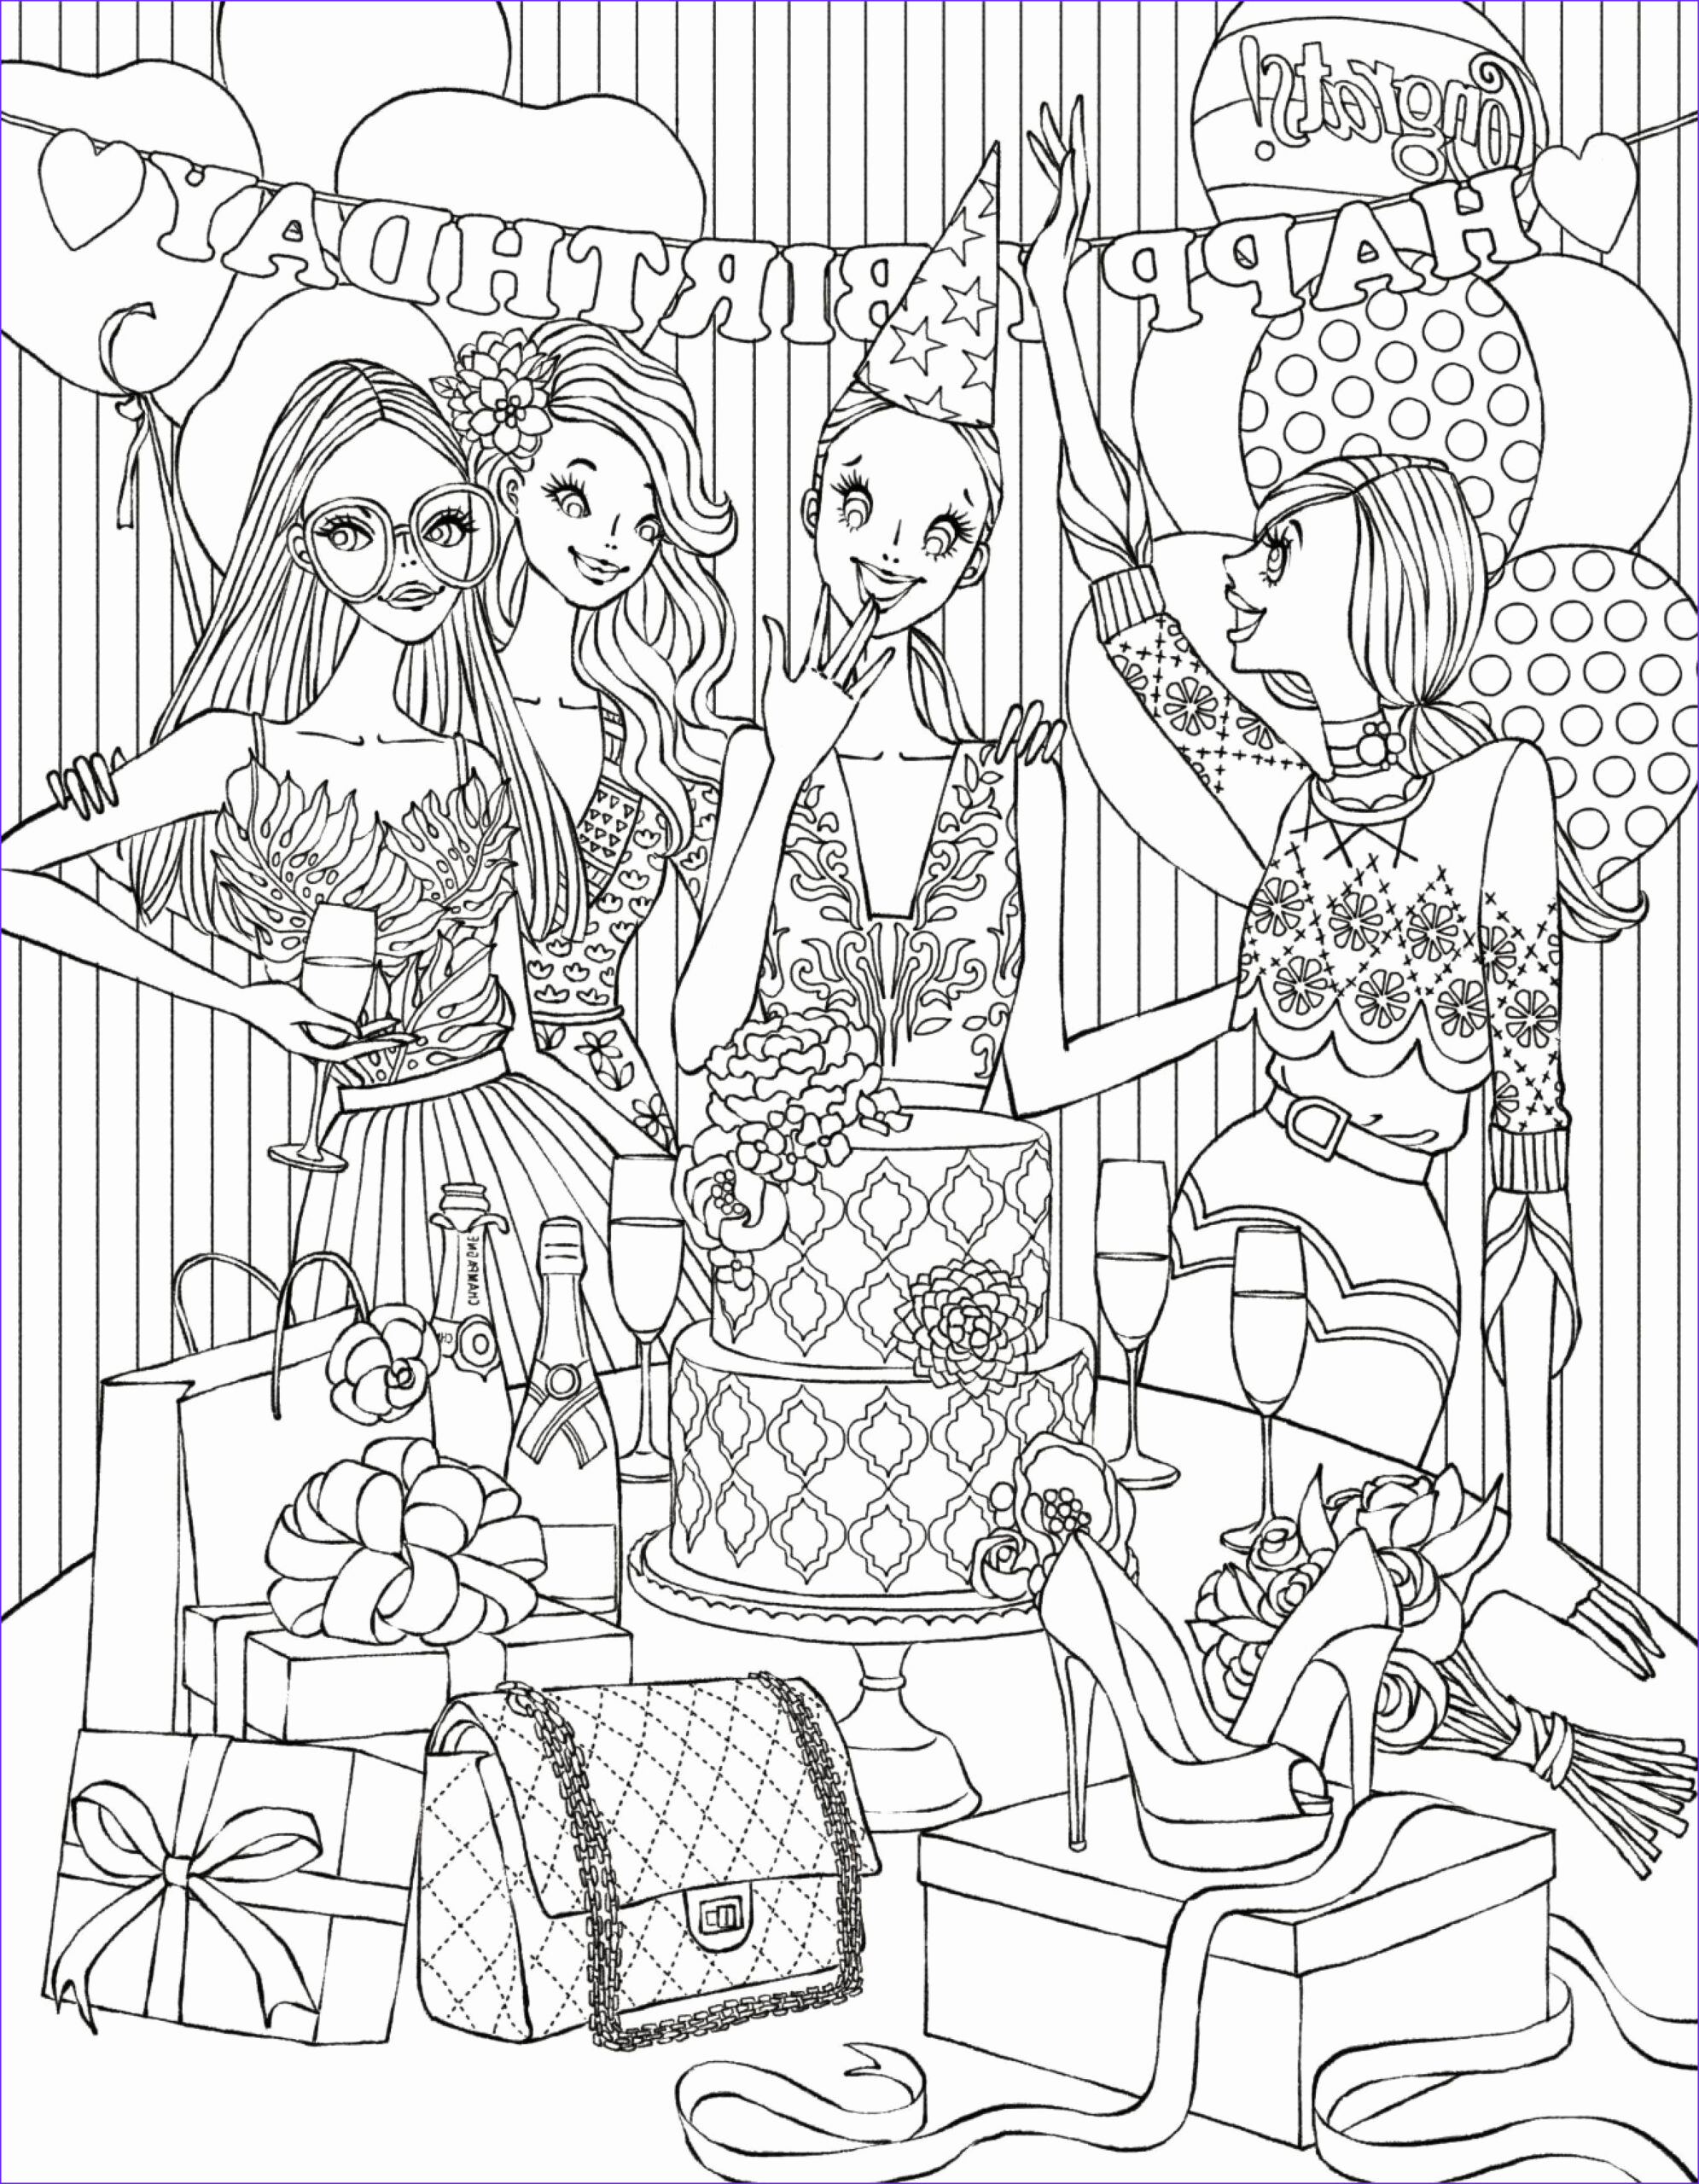 Turn Photos Into Coloring Pages Free Beautiful Photos Turn S Into Coloring Pages App at Getcolorings